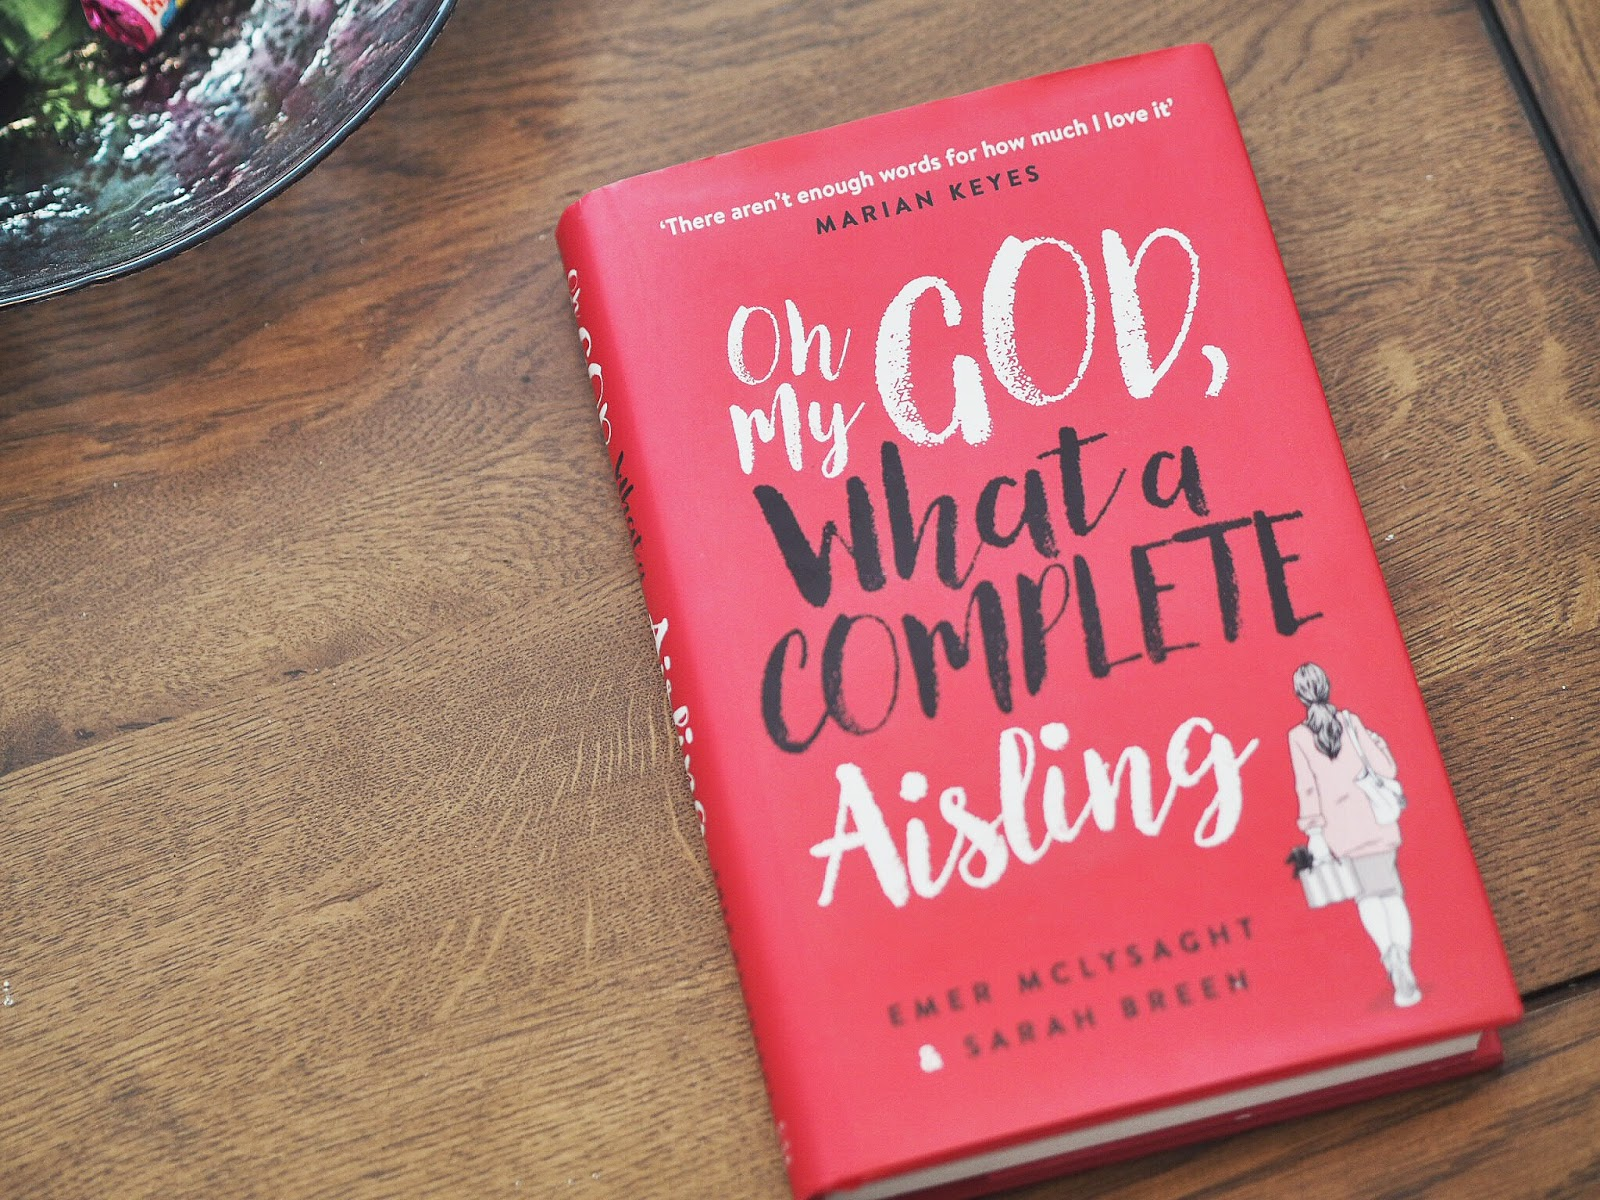 Oh My God What A Complete Aisling by Emer McLysaght and Sarah Breen | Book Review